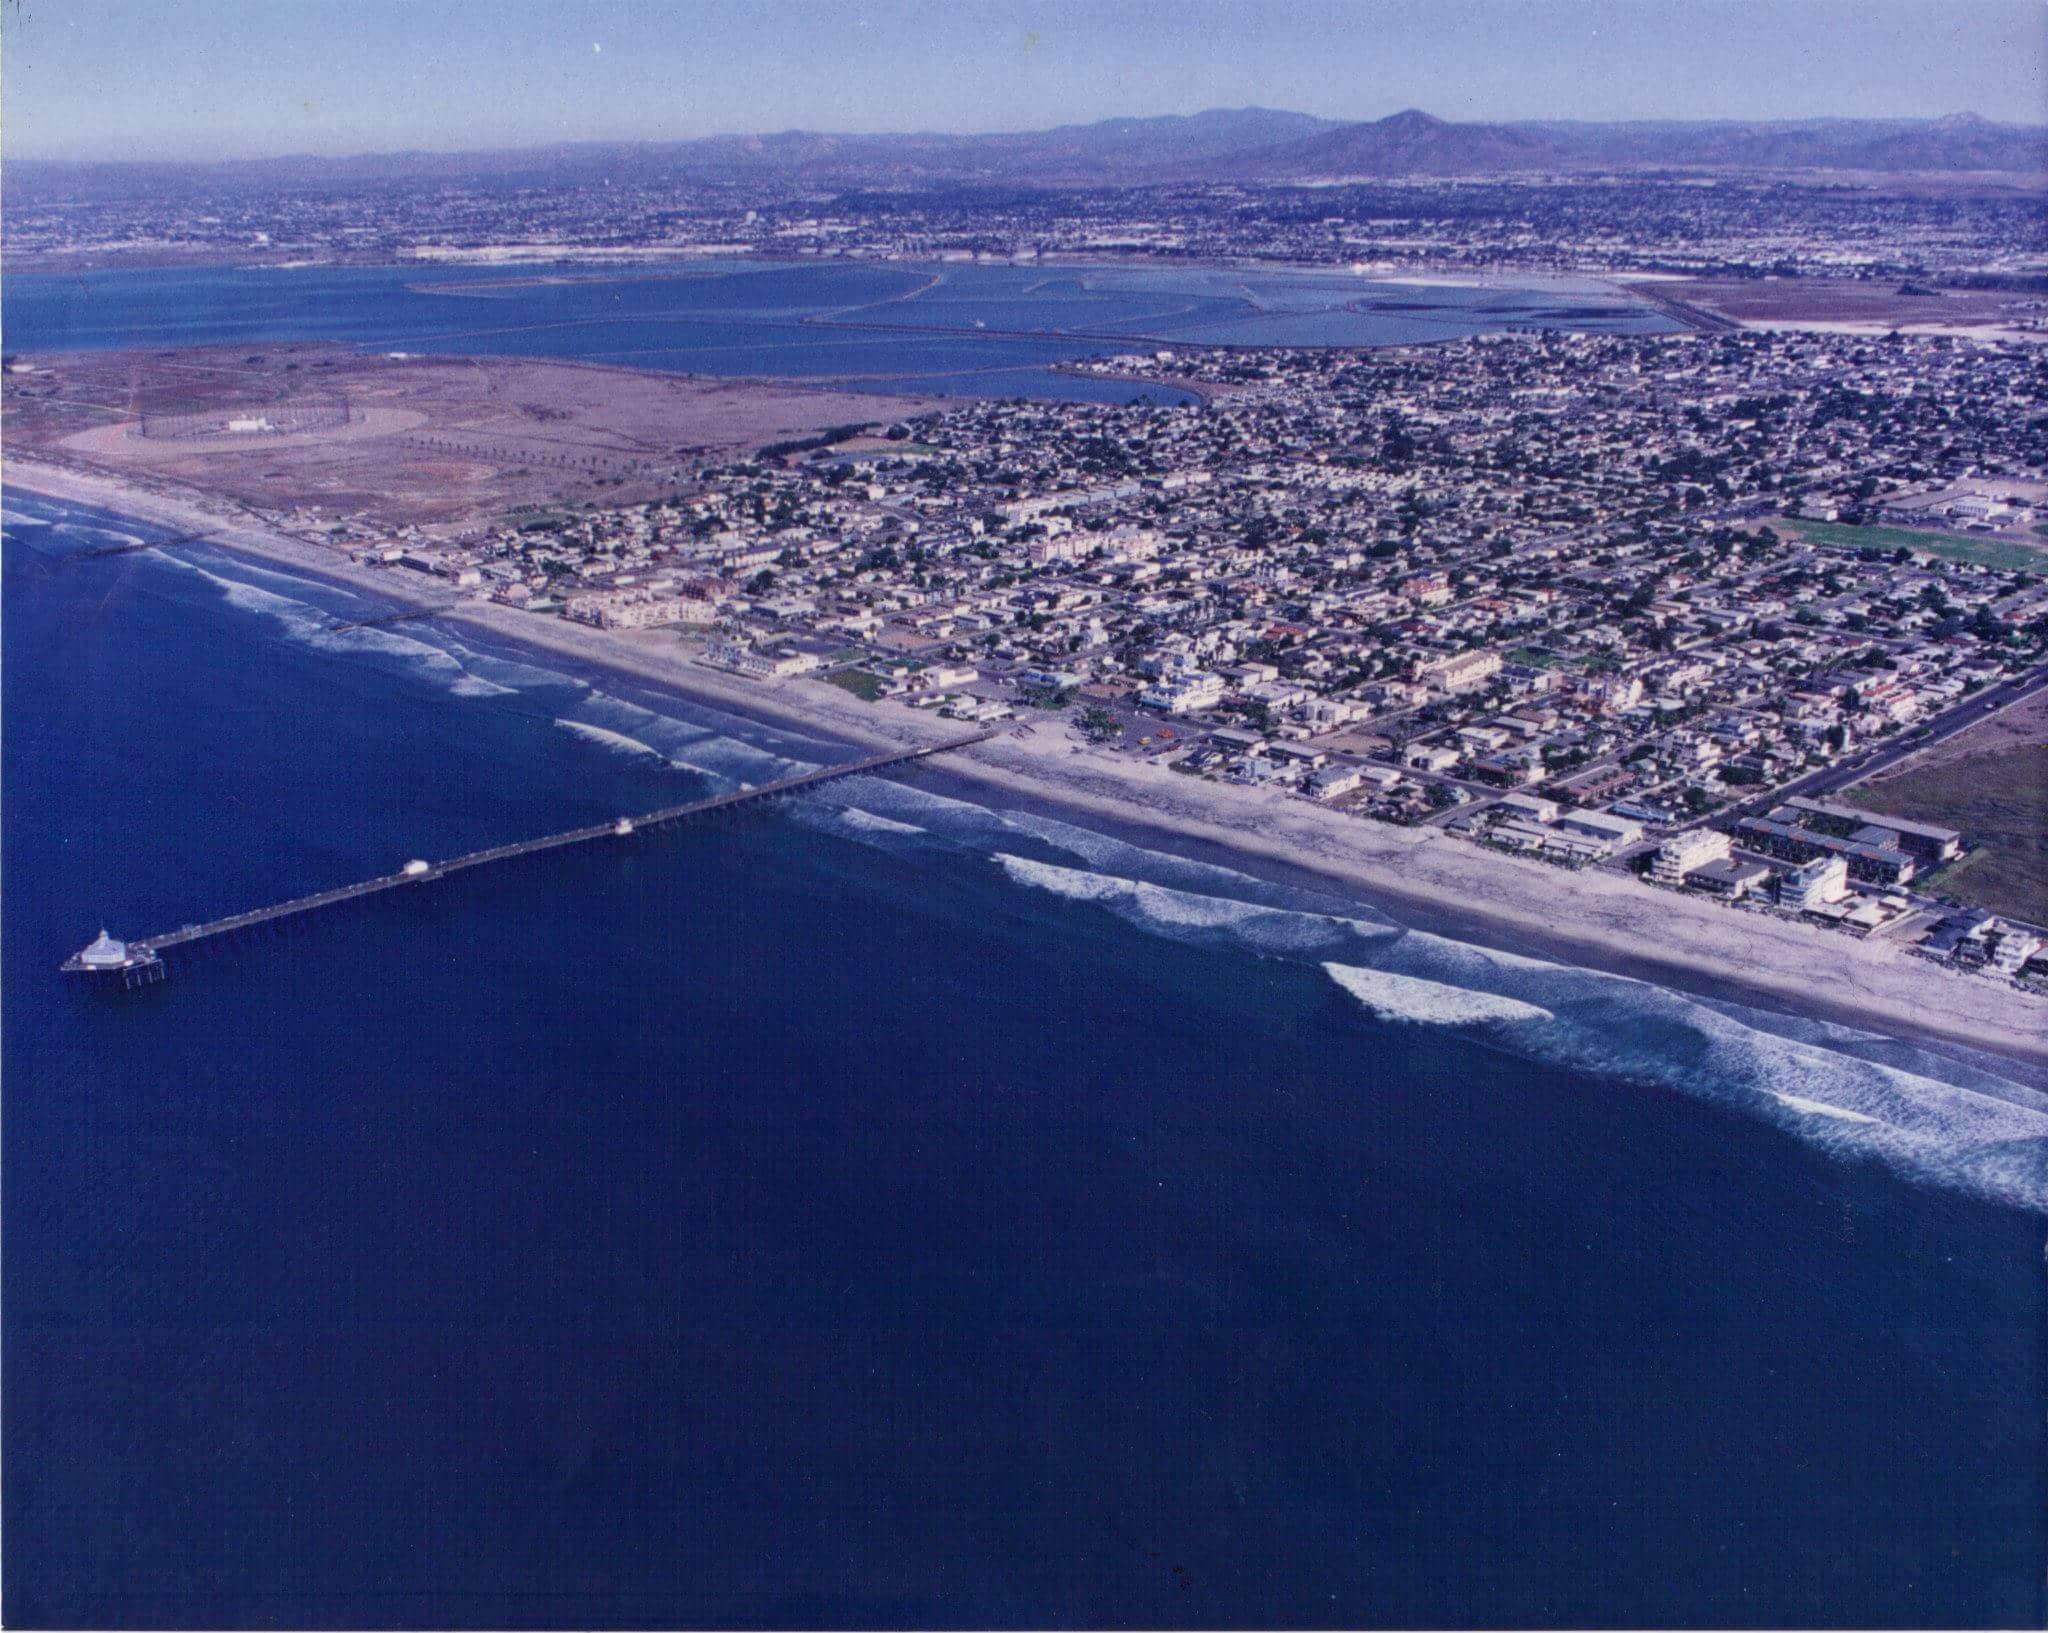 An Imperial Beach Hidden Gem: Old Archive Aerial Photo of Imperial ...